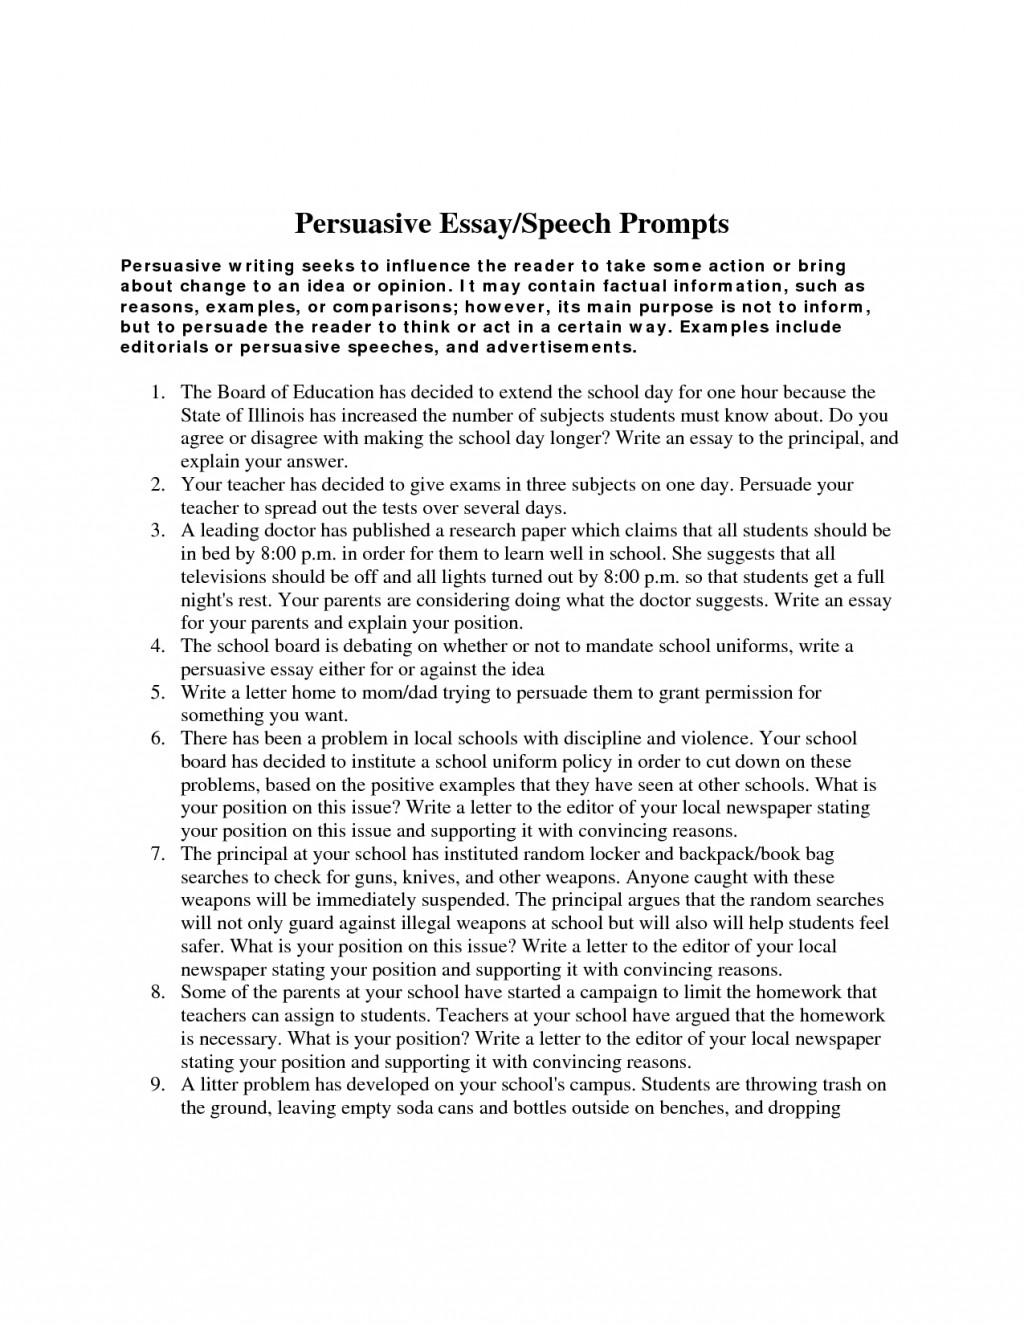 029 Persuasive Essay On Bullying Prompts Cybers Picture Inspirations Essays In School Effects Of The Main Dreaded Argumentative Topics Schools Examples Cyberbullying Large